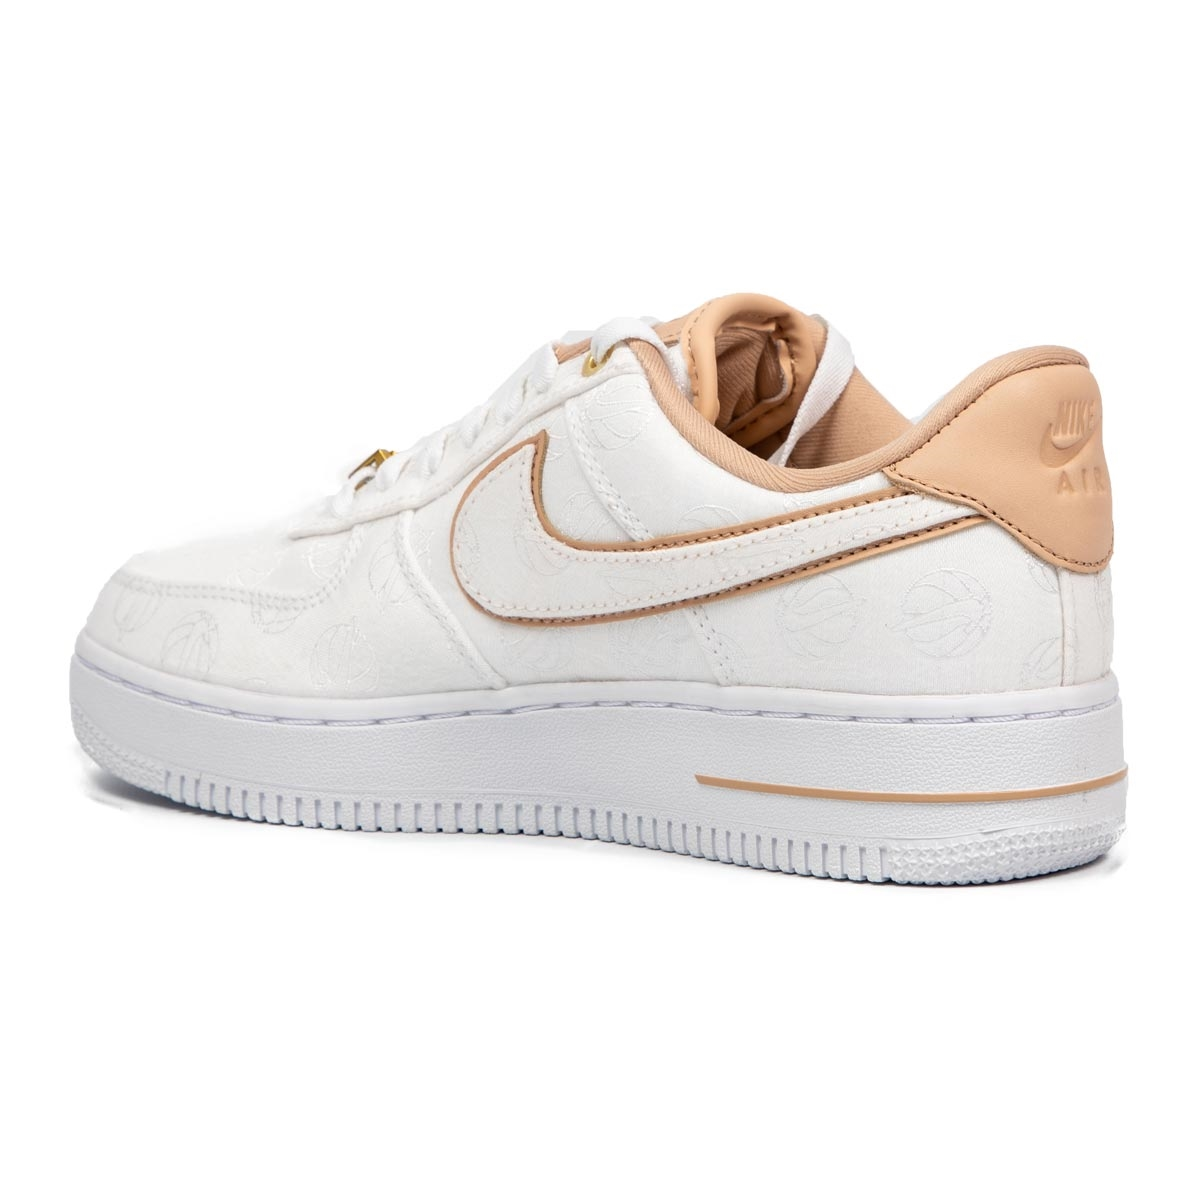 nike air force 1 oro bianche